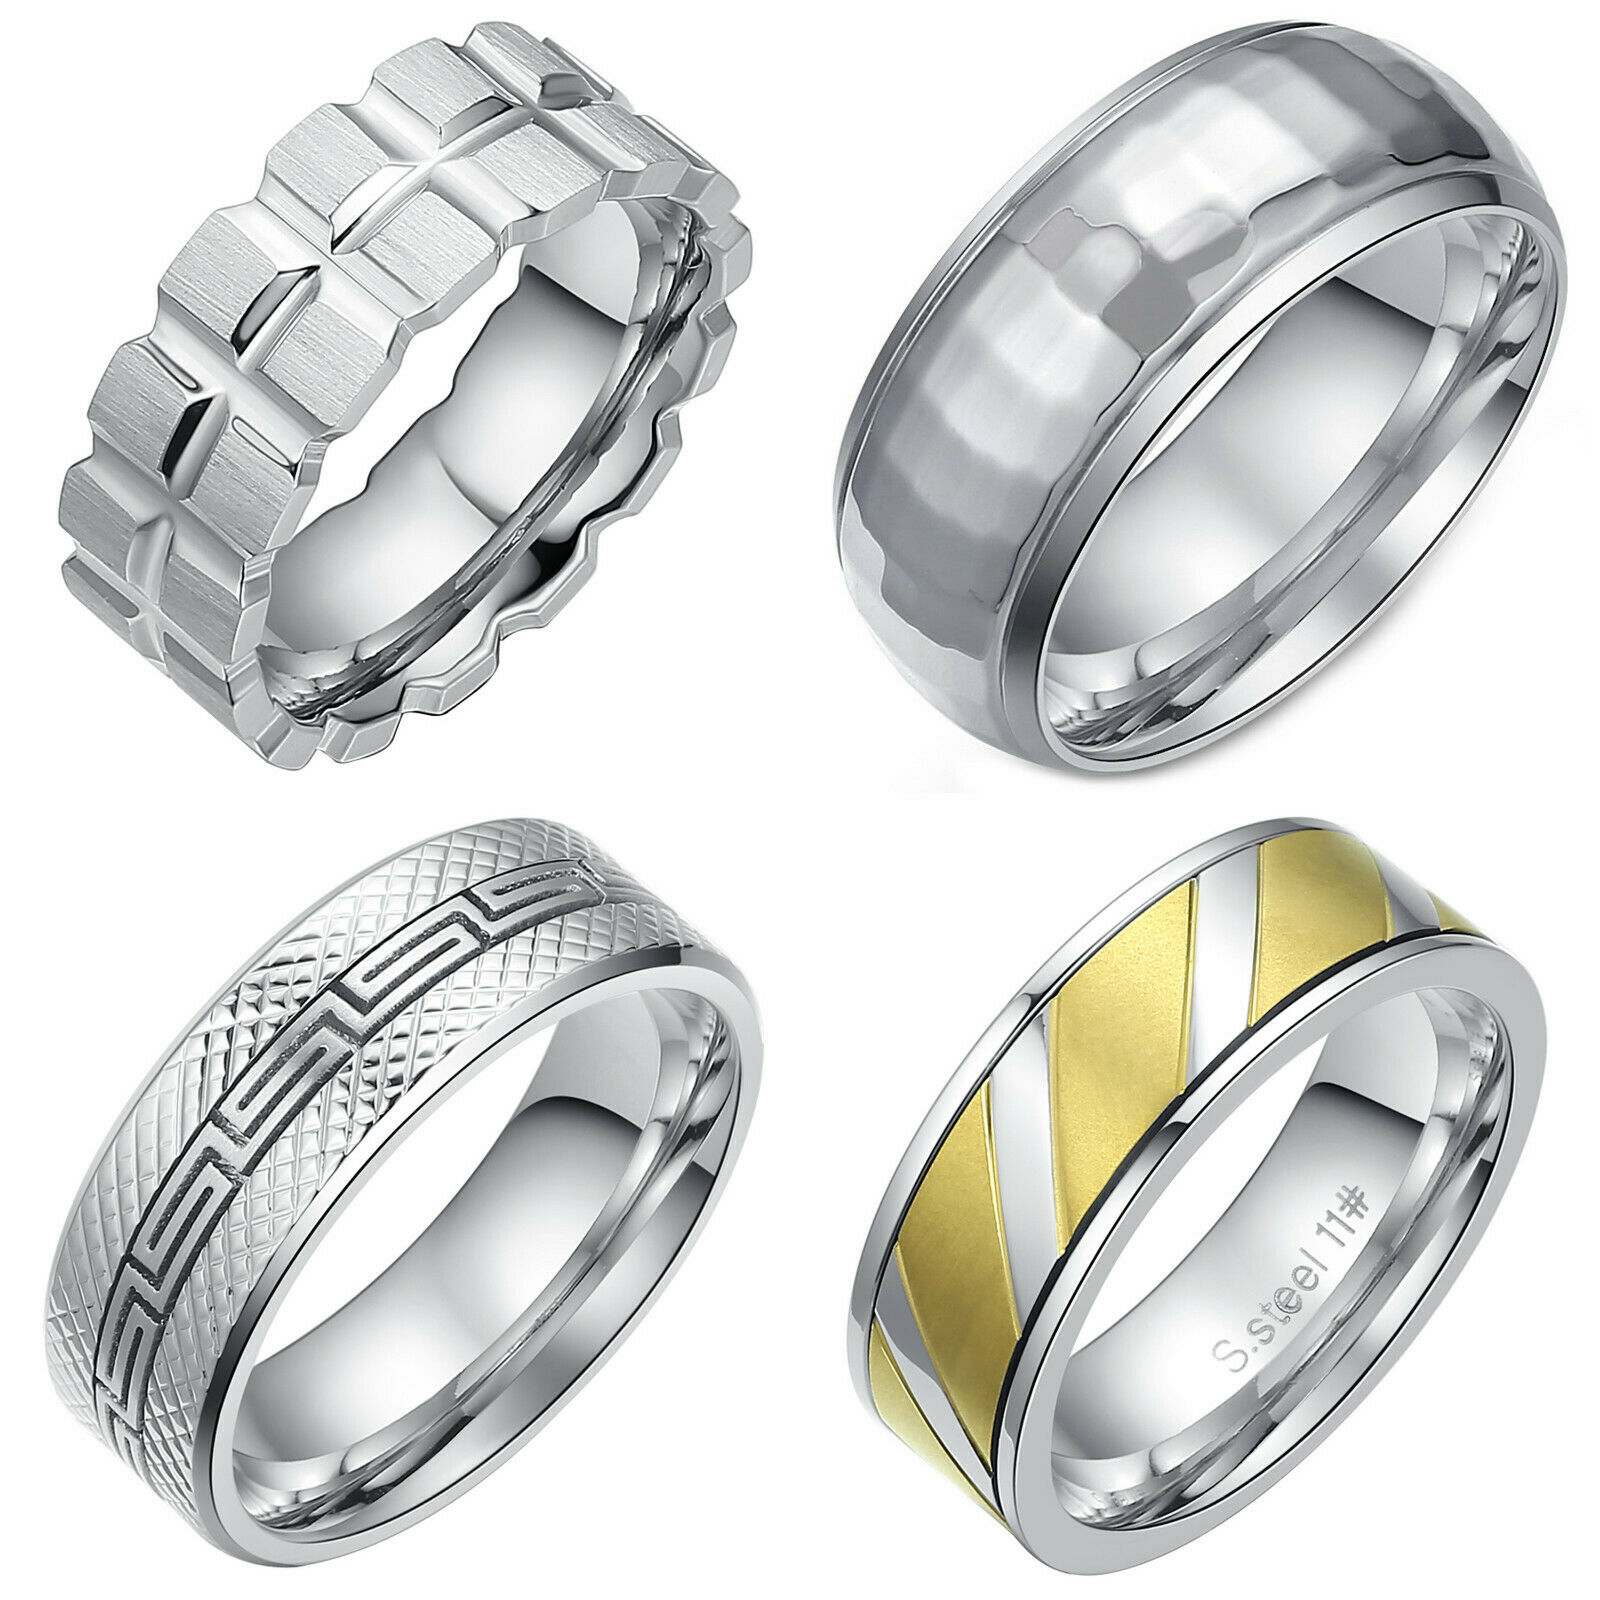 Men's Ring Stainless Steel  Polished Comfort Fit Wedding Band (US Seller) Jewelry & Watches